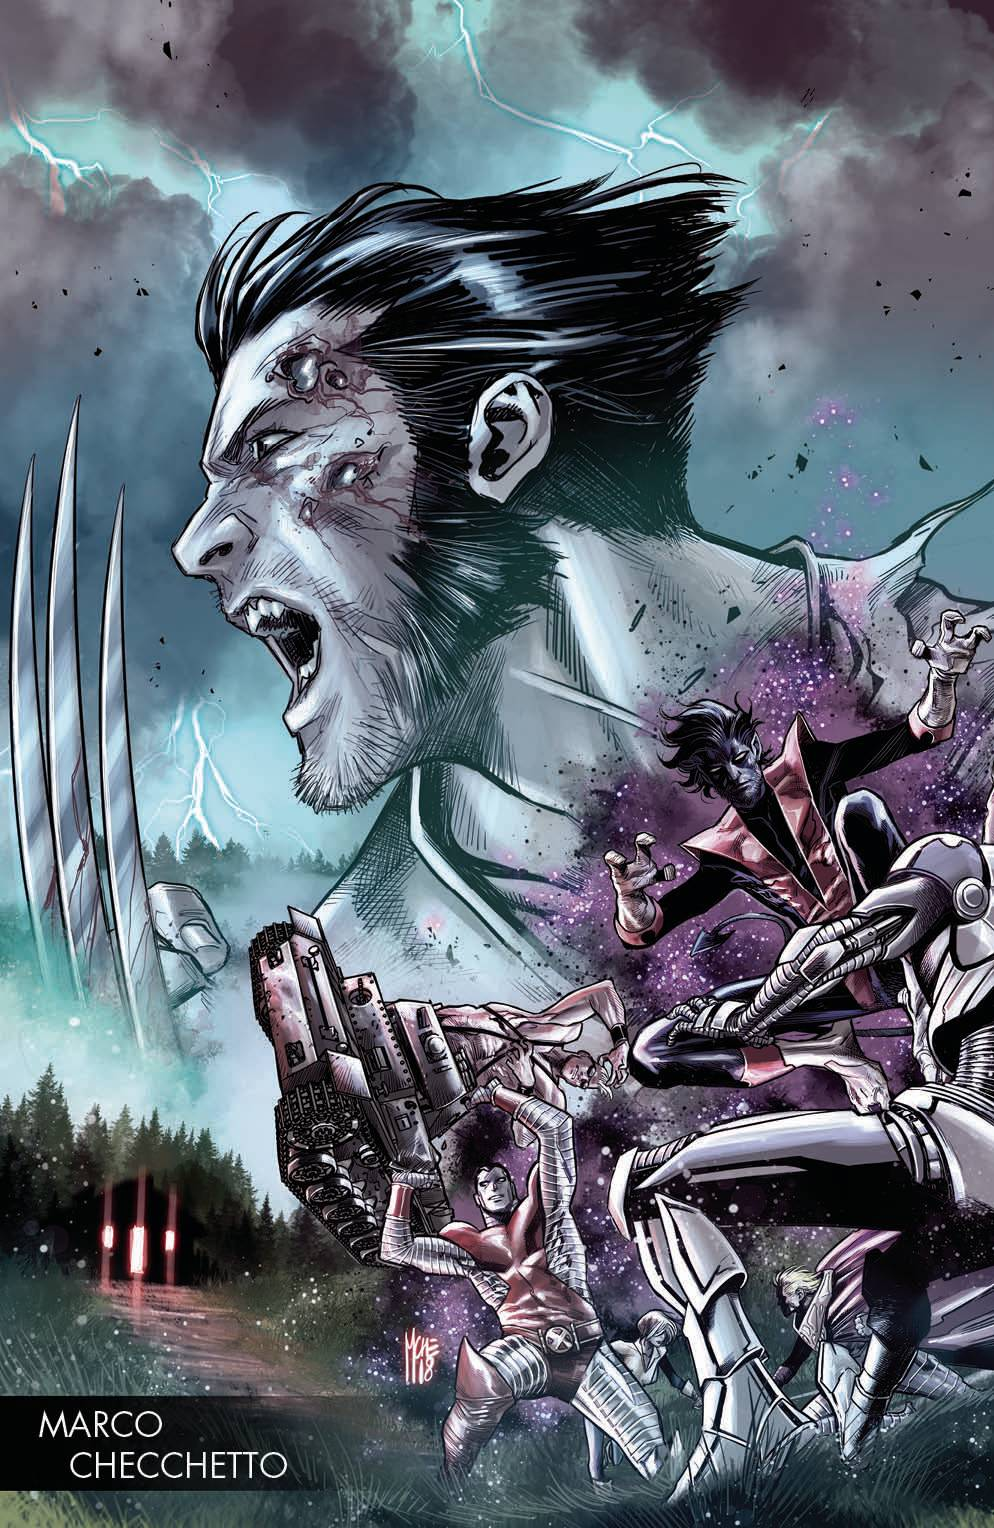 HUNT FOR WOLVERINE 1 of 1 CHECCHETTO YOUNG GUNS VAR.jpg